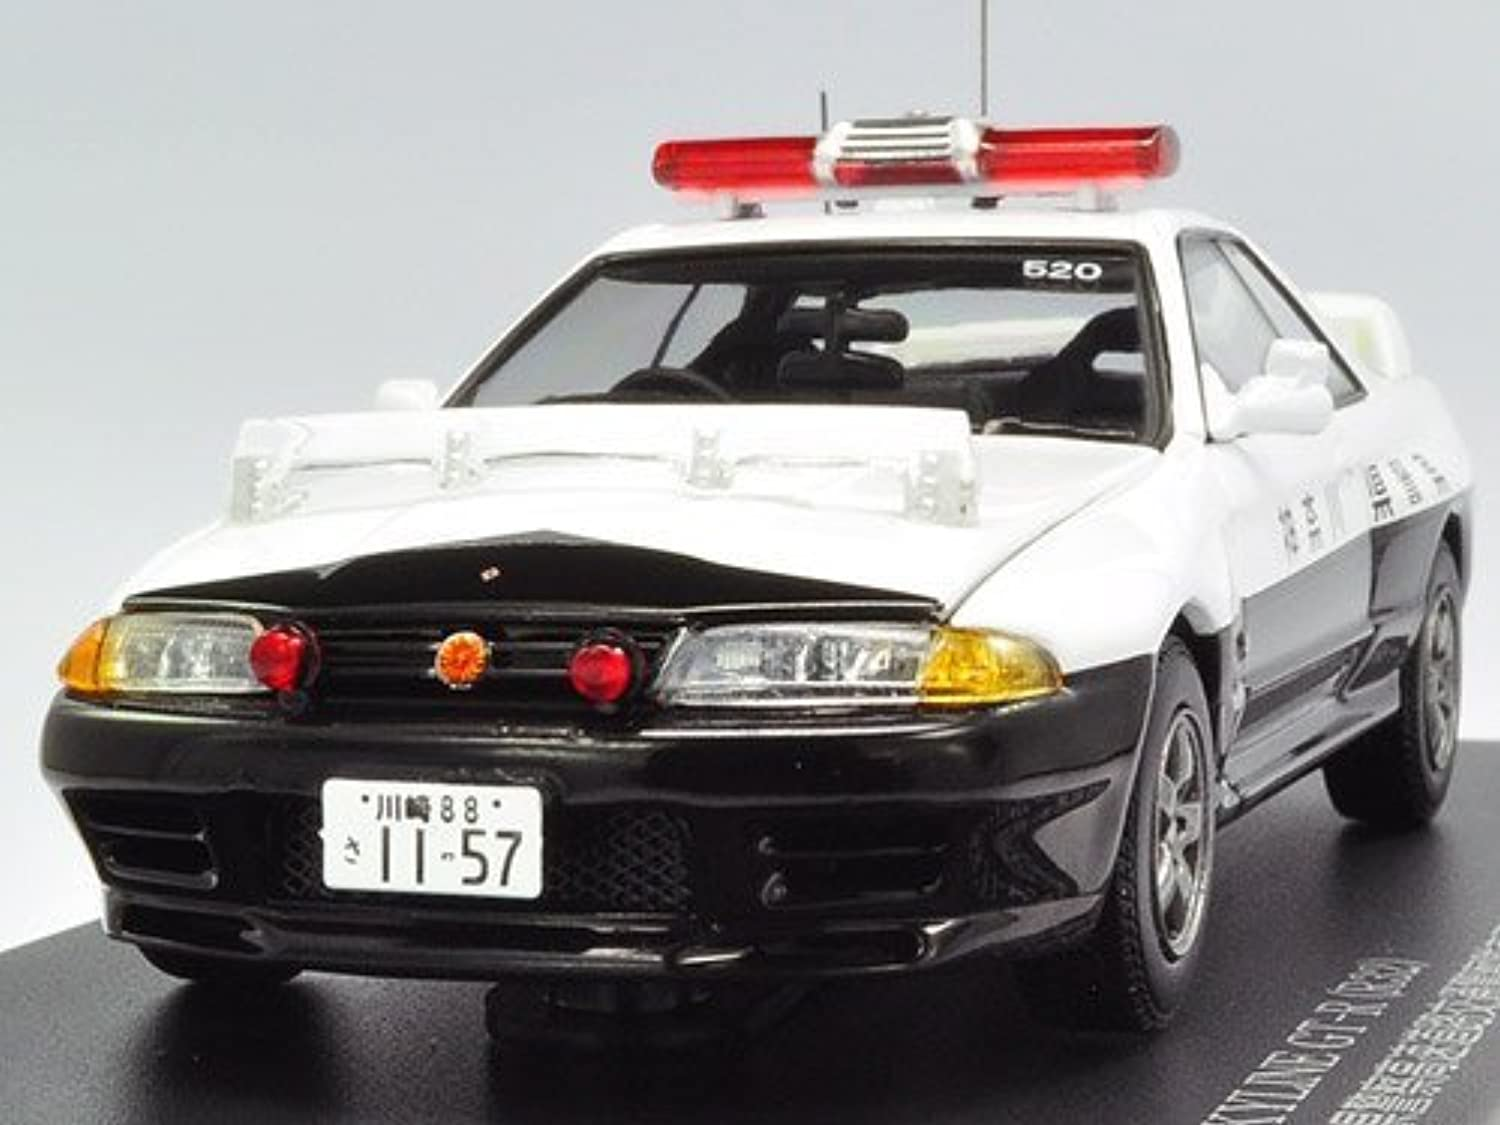 R32 1993 Kanagawa Prefectural Police highway traffic police vehicle [RAI'S   raise] 1 43 Nissan Skyline GT-R (520) (japan import)